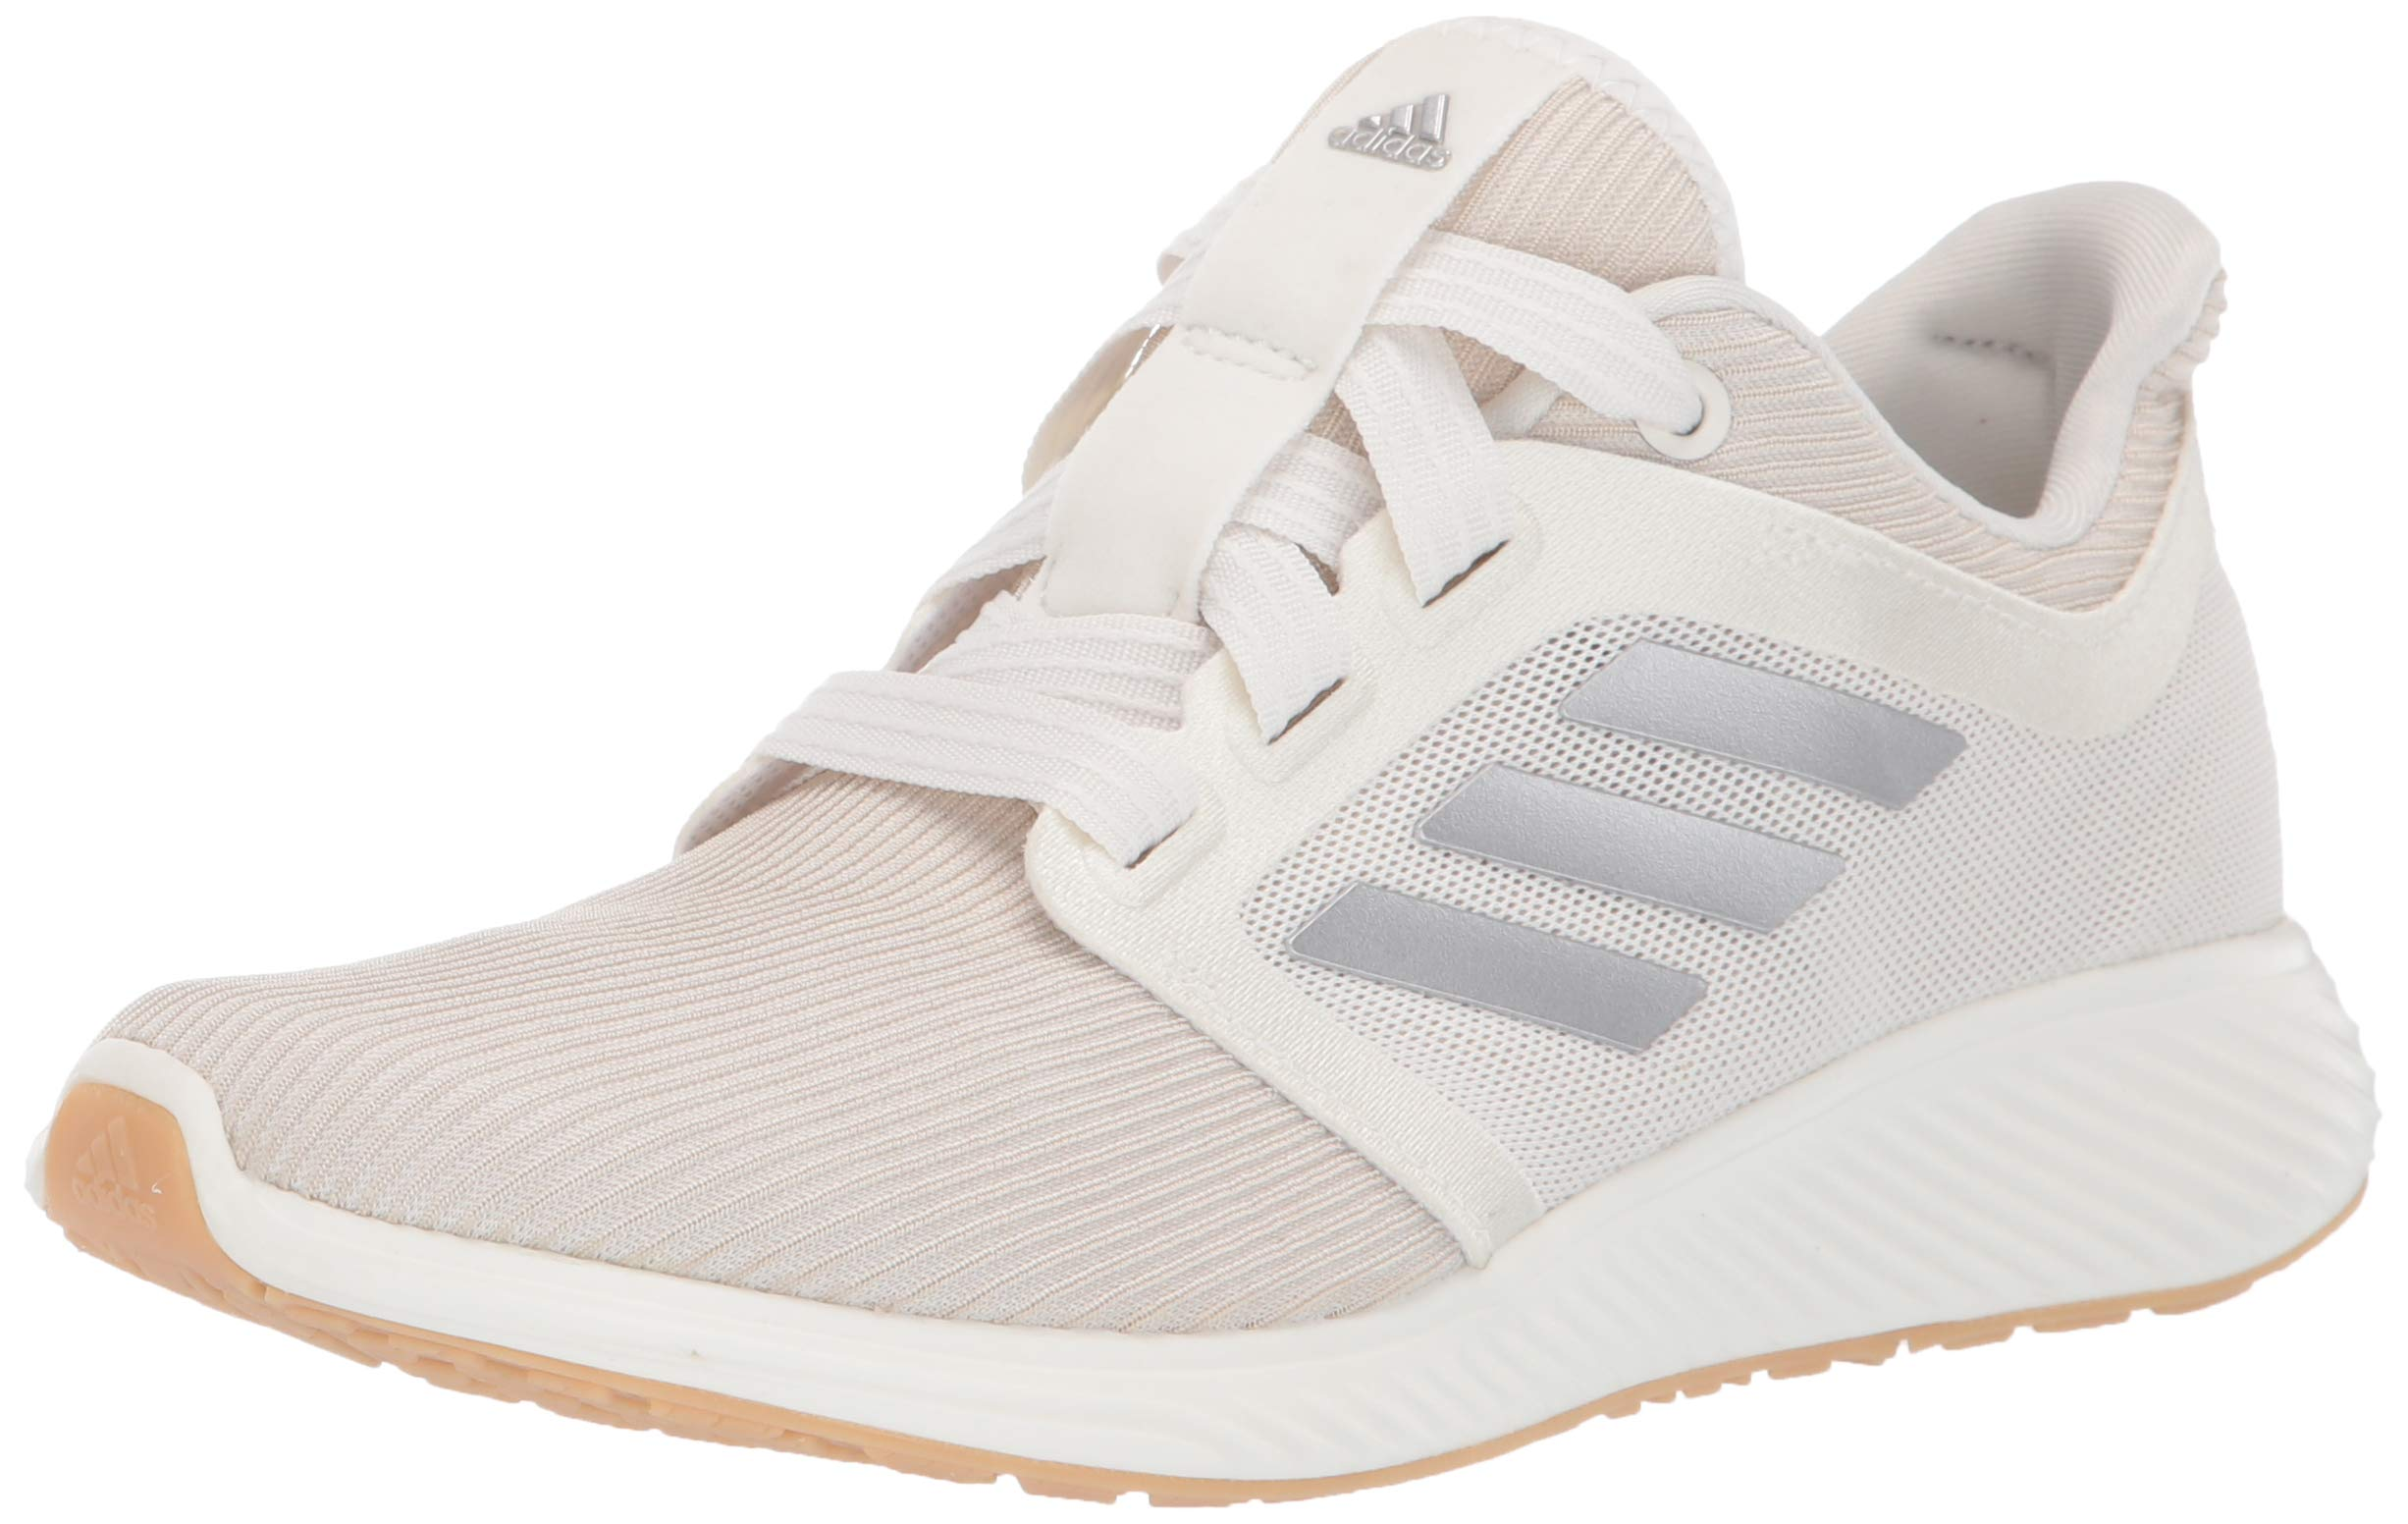 adidas Women's Edge Lux 3 Running Shoe, st Pale Nude/tech Silver Metallic/Cloud White, 8.5 M US by adidas